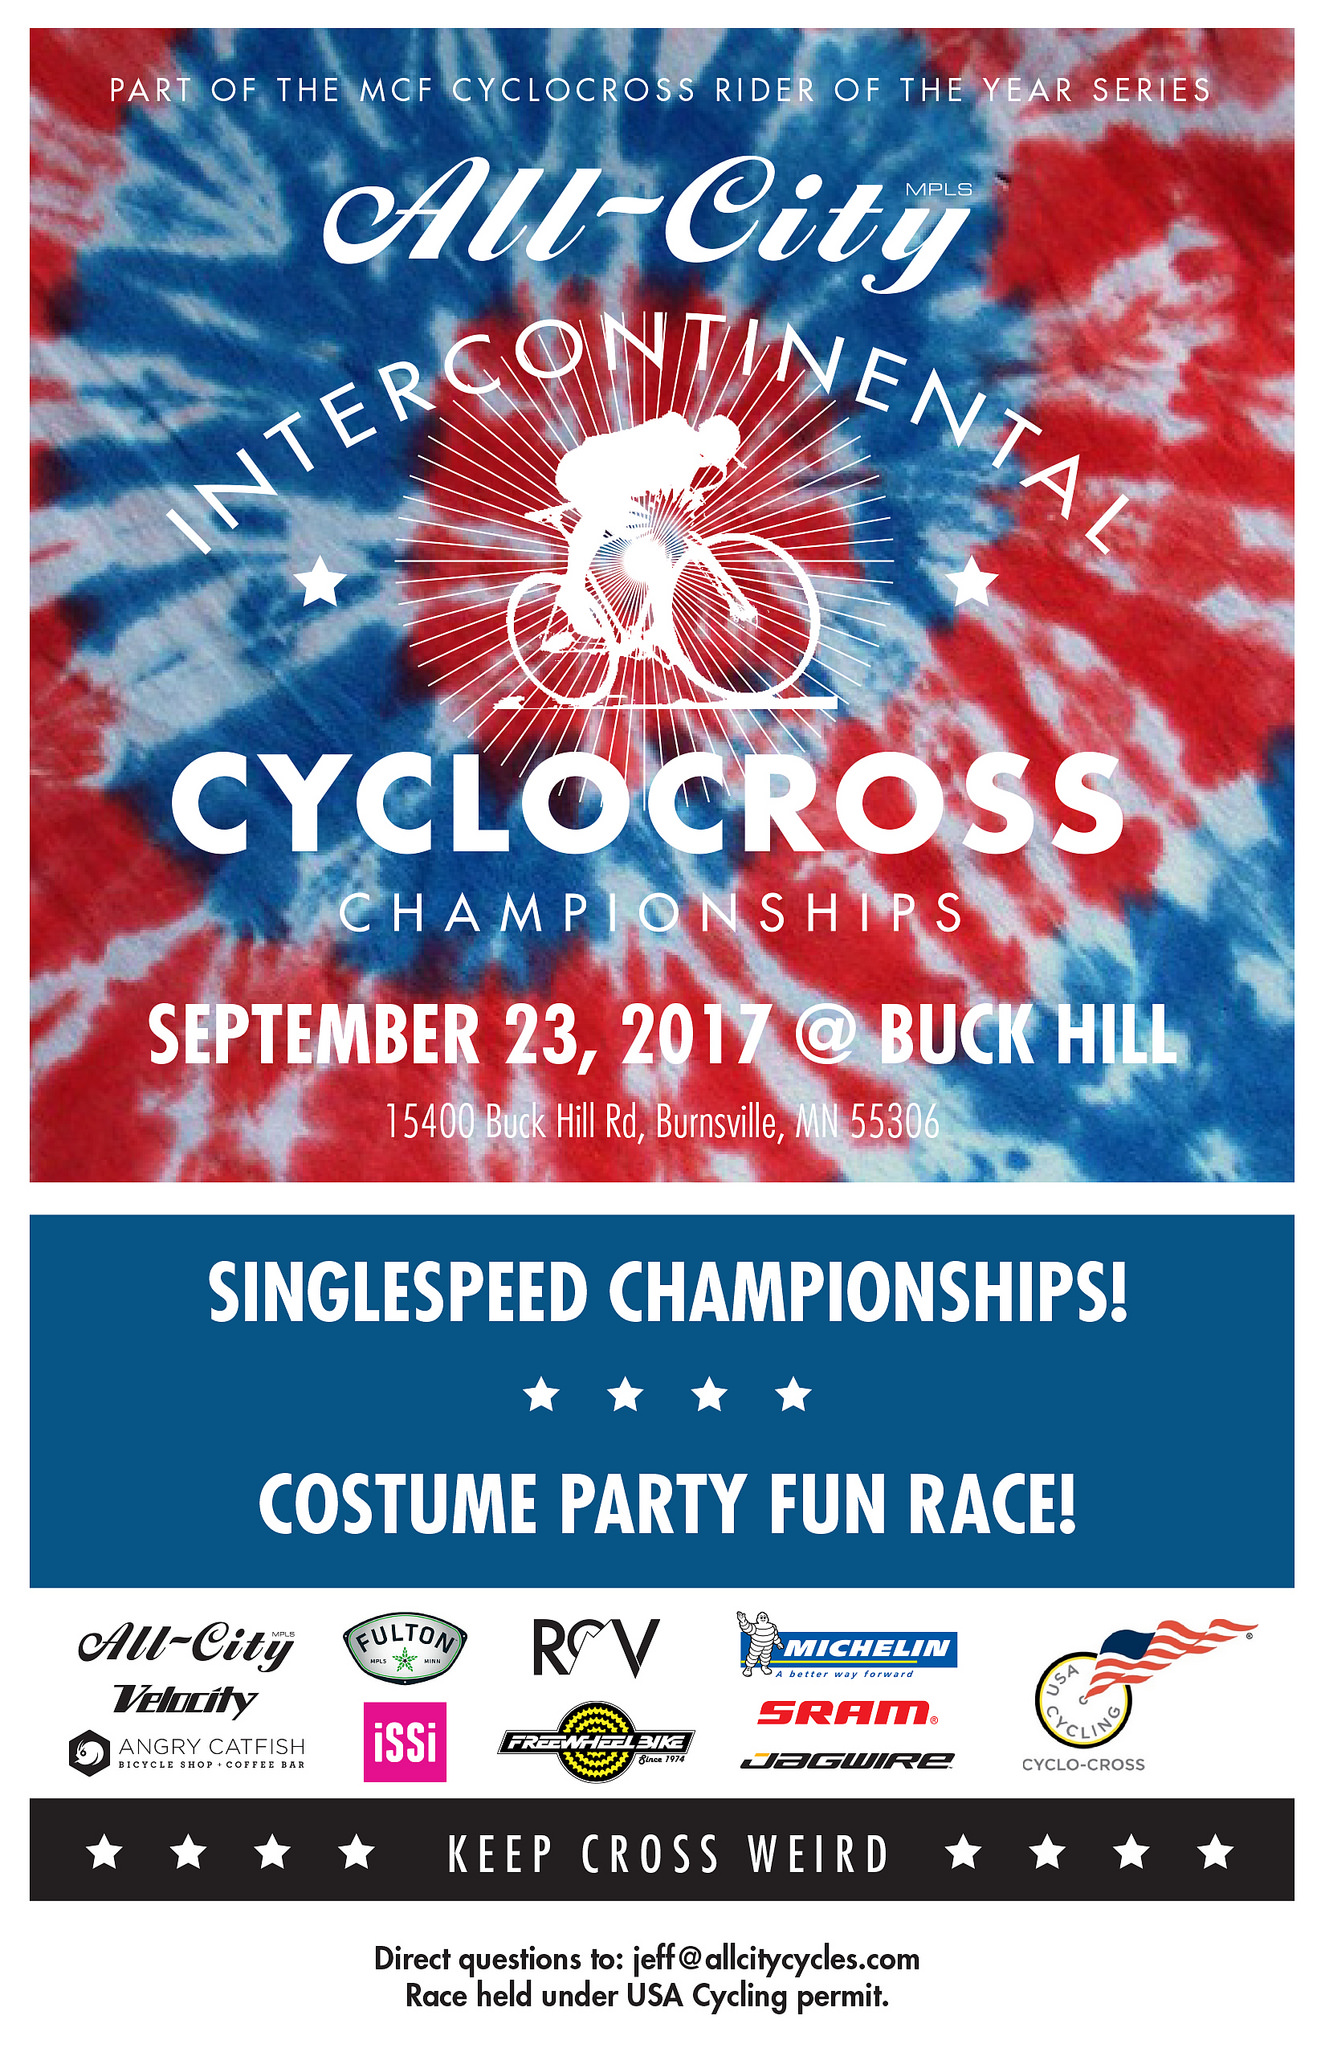 All-City Intercontinental Cyclocross Championships 9/23